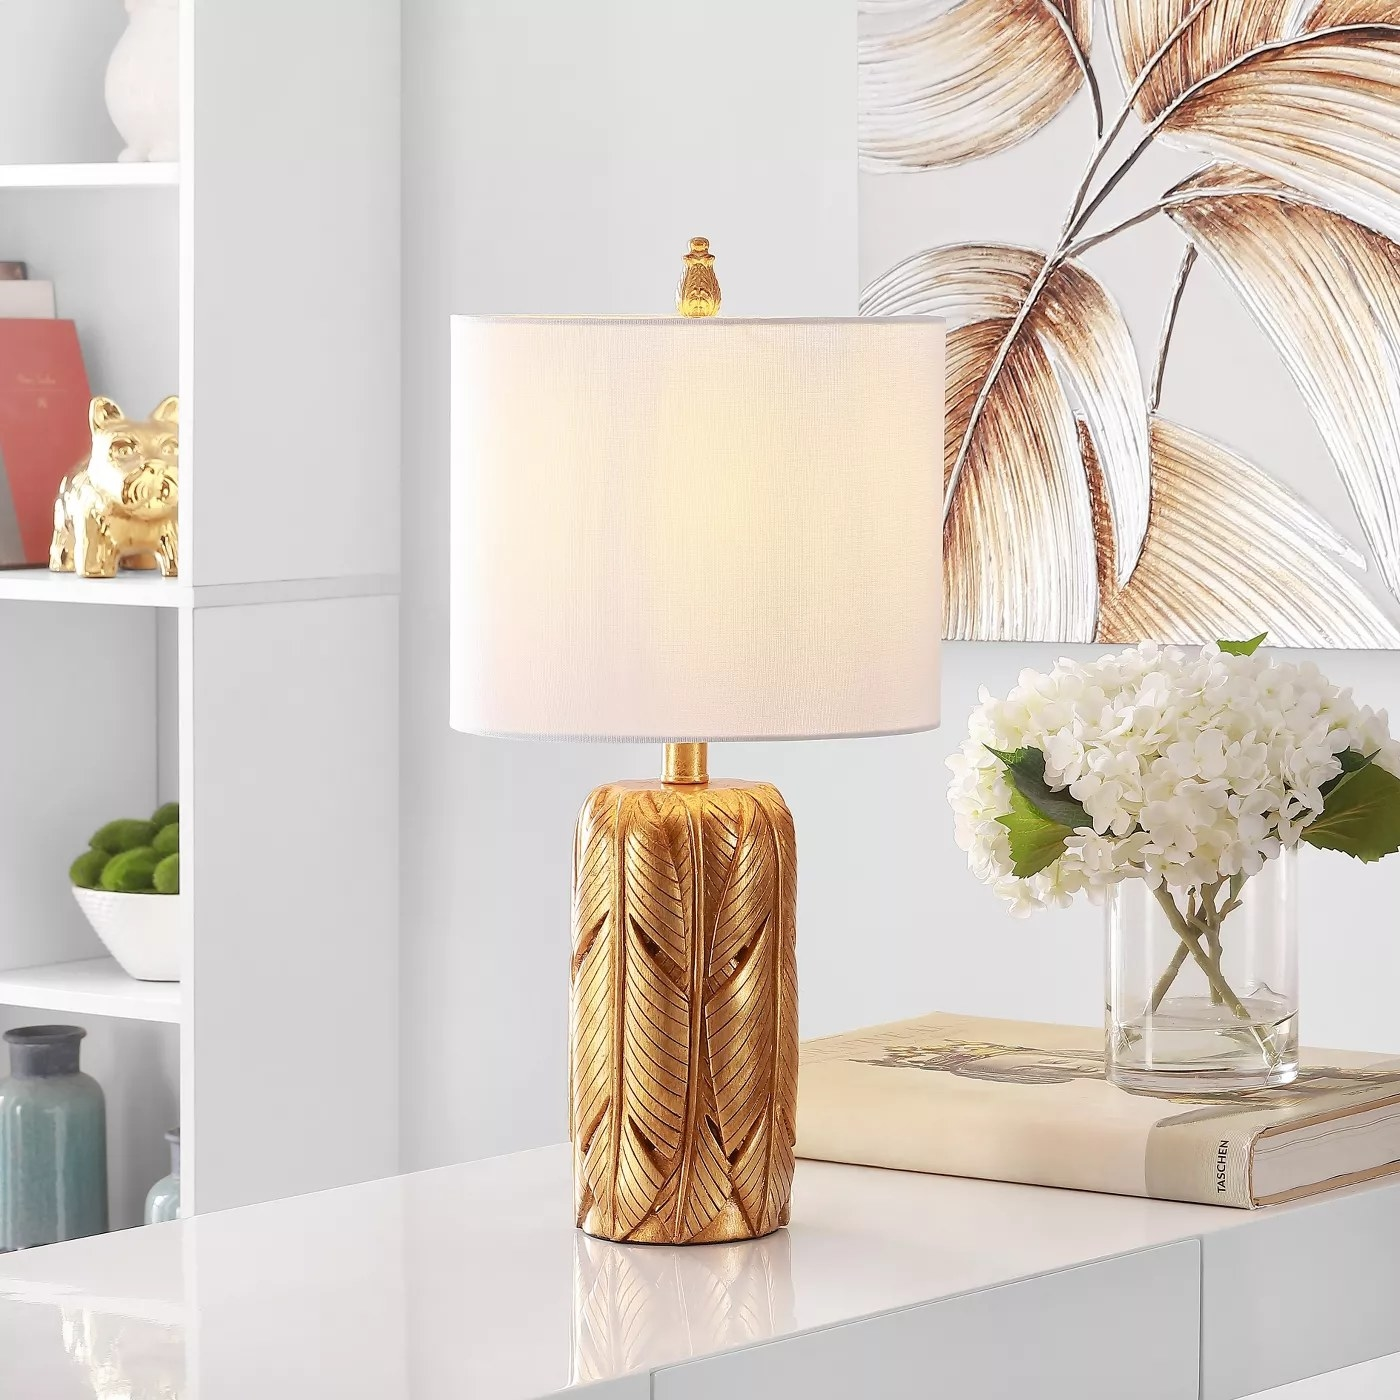 The gold table lamp